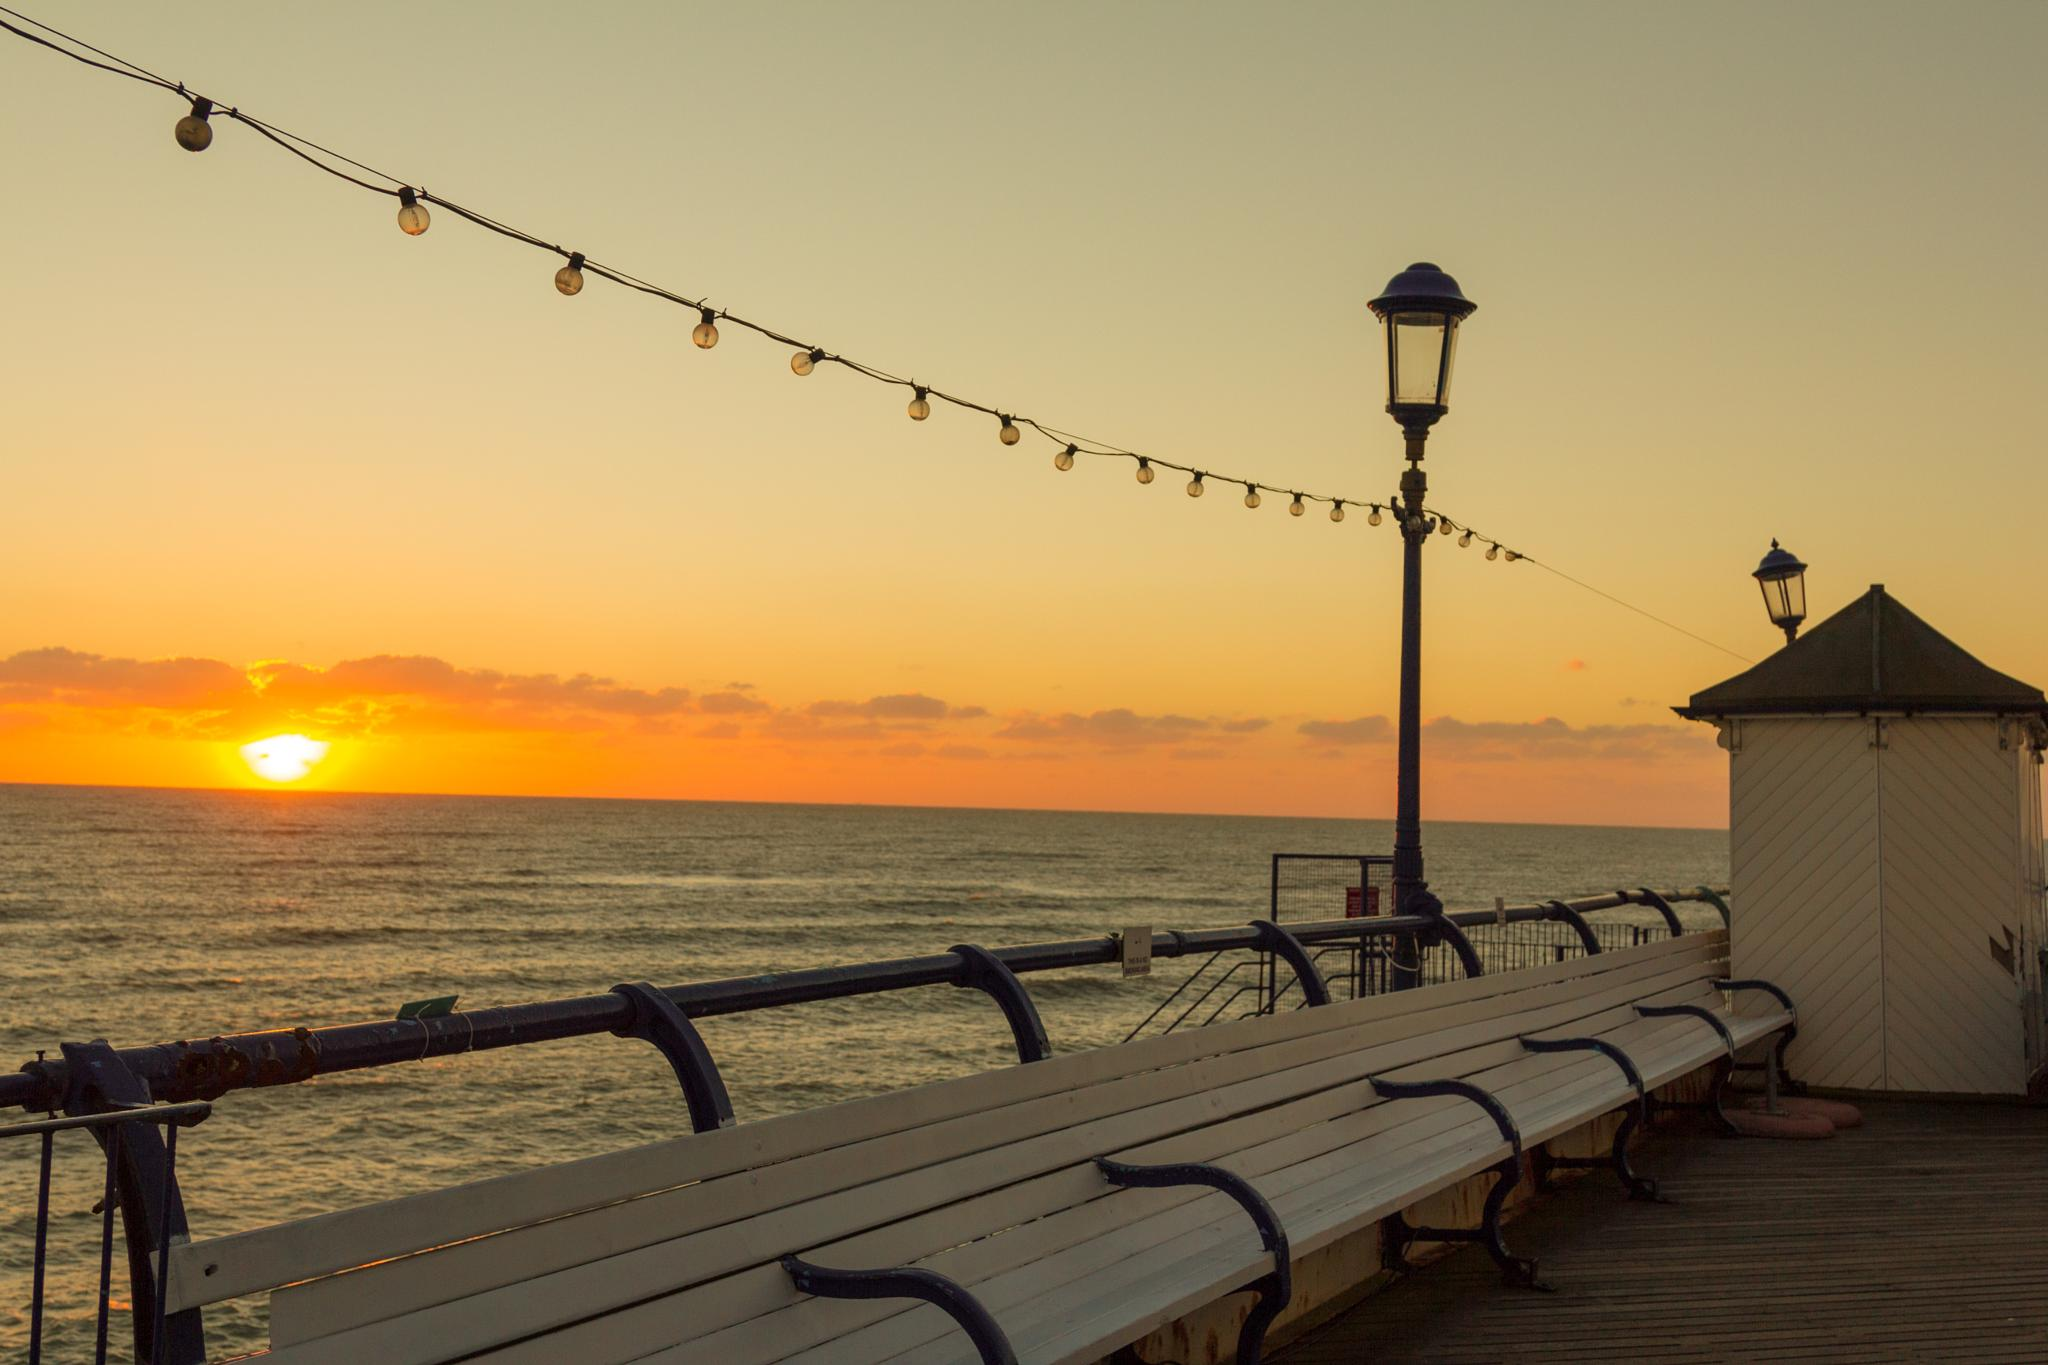 sunrise at eastbourne pier by eddie.powell.9809